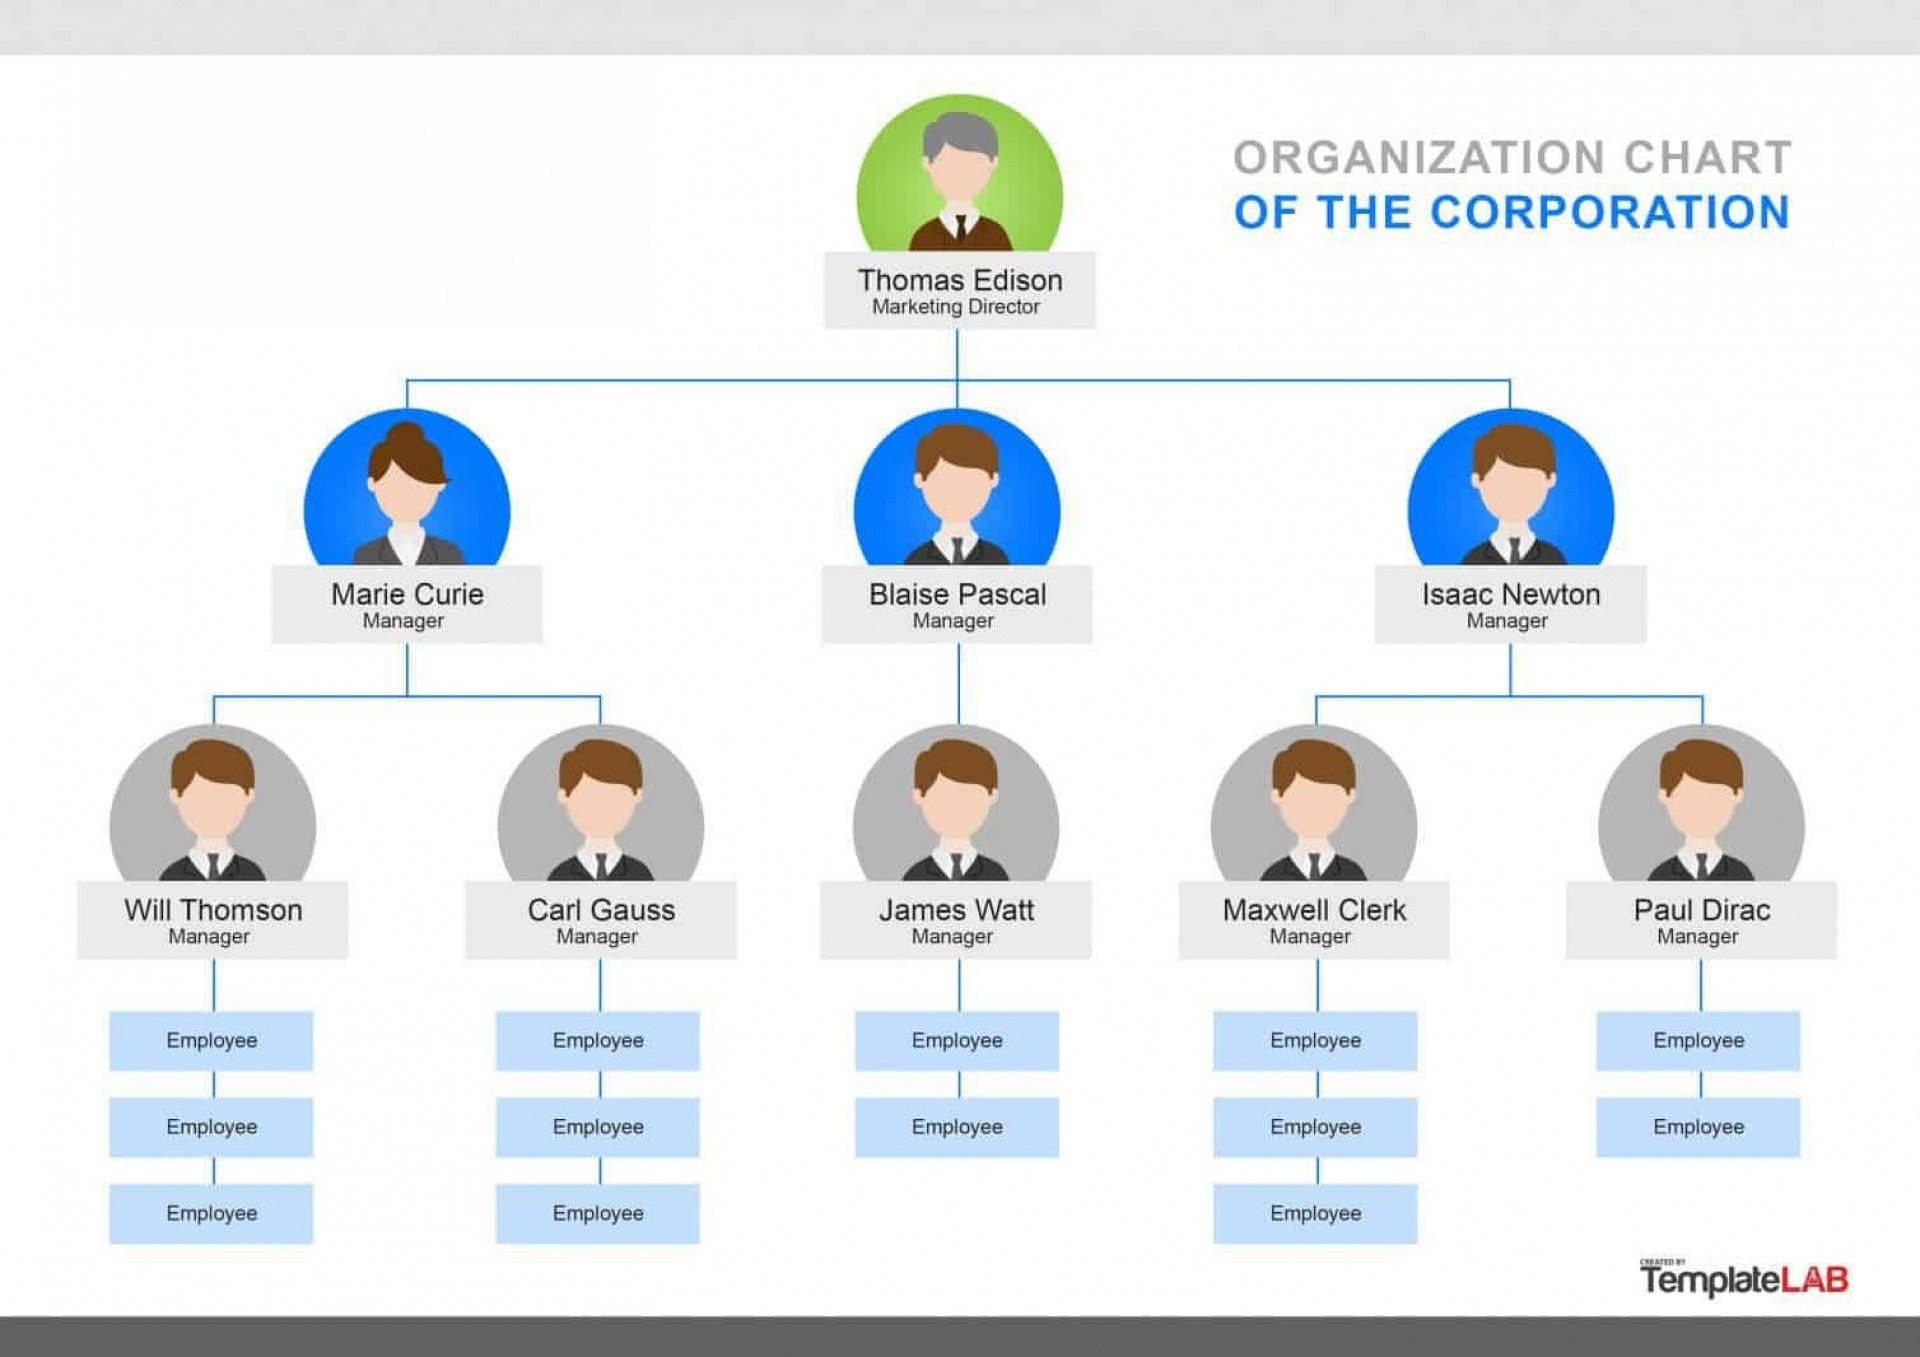 000 Shocking Hierarchy Organizational Chart Template Word Concept  Hierarchical Organization -1920